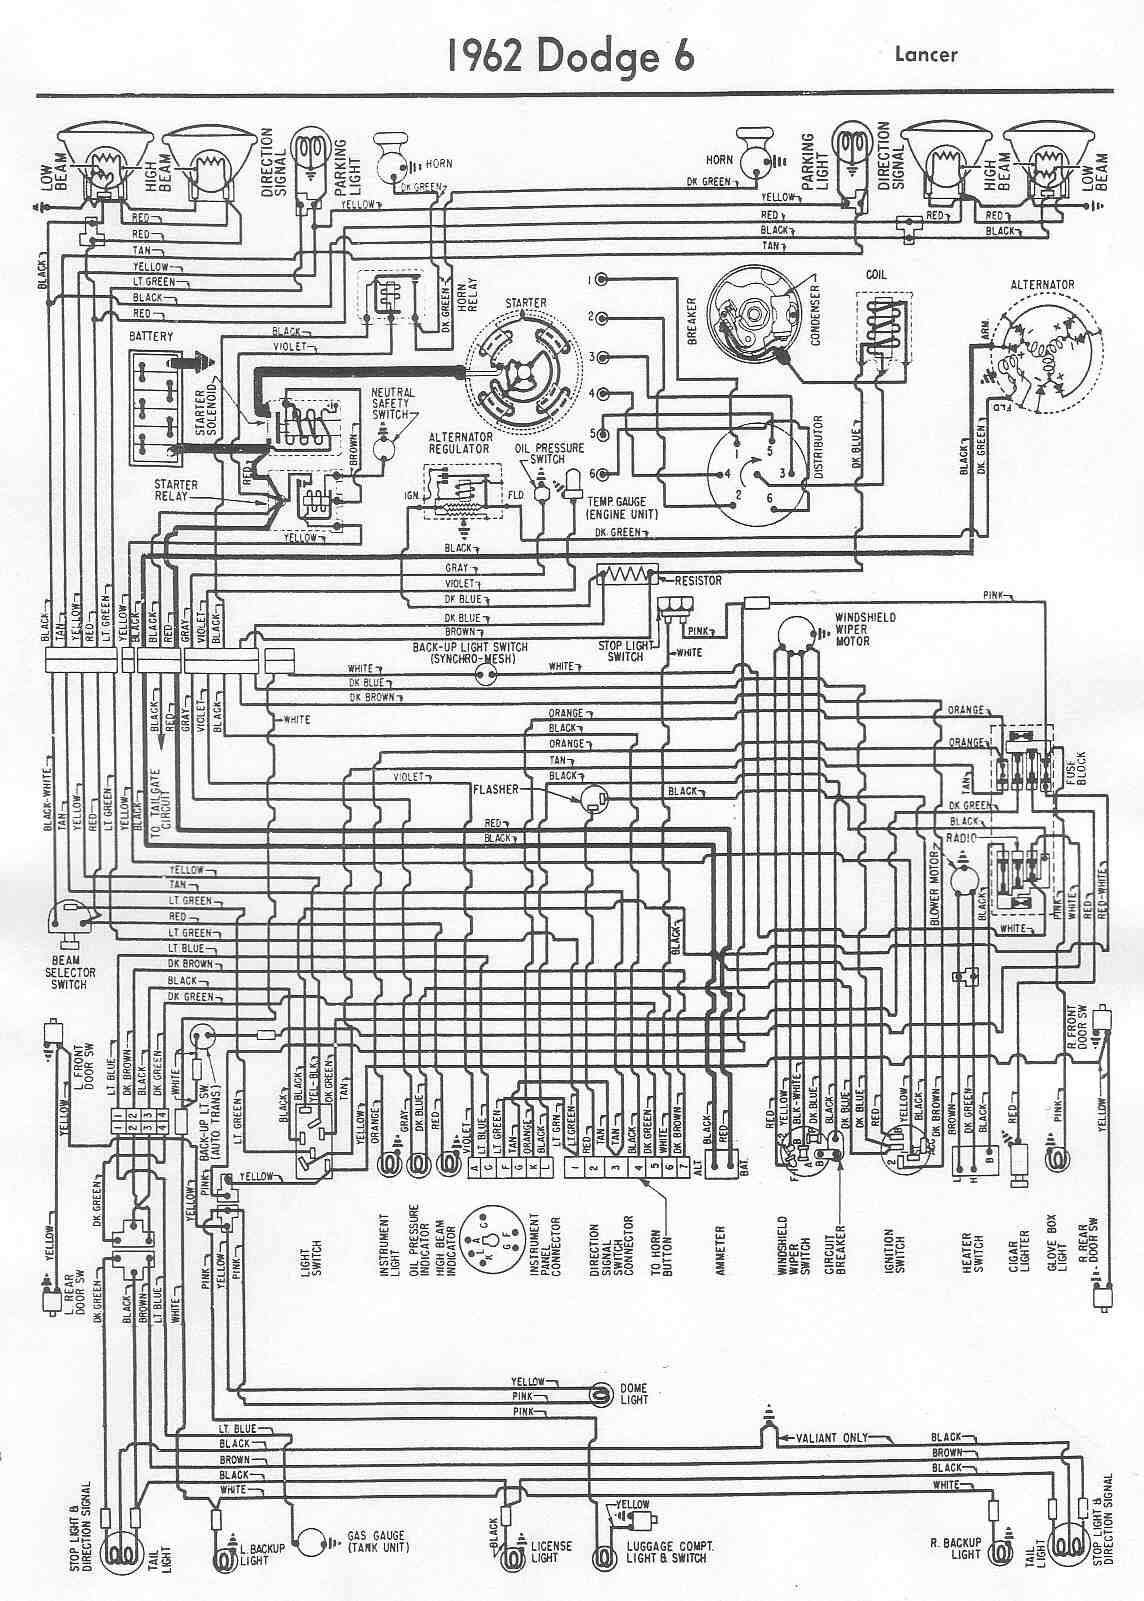 Dodge Car Manuals Wiring Diagrams Pdf Fault Codes 1999 Dakota Electrical Schematic Download